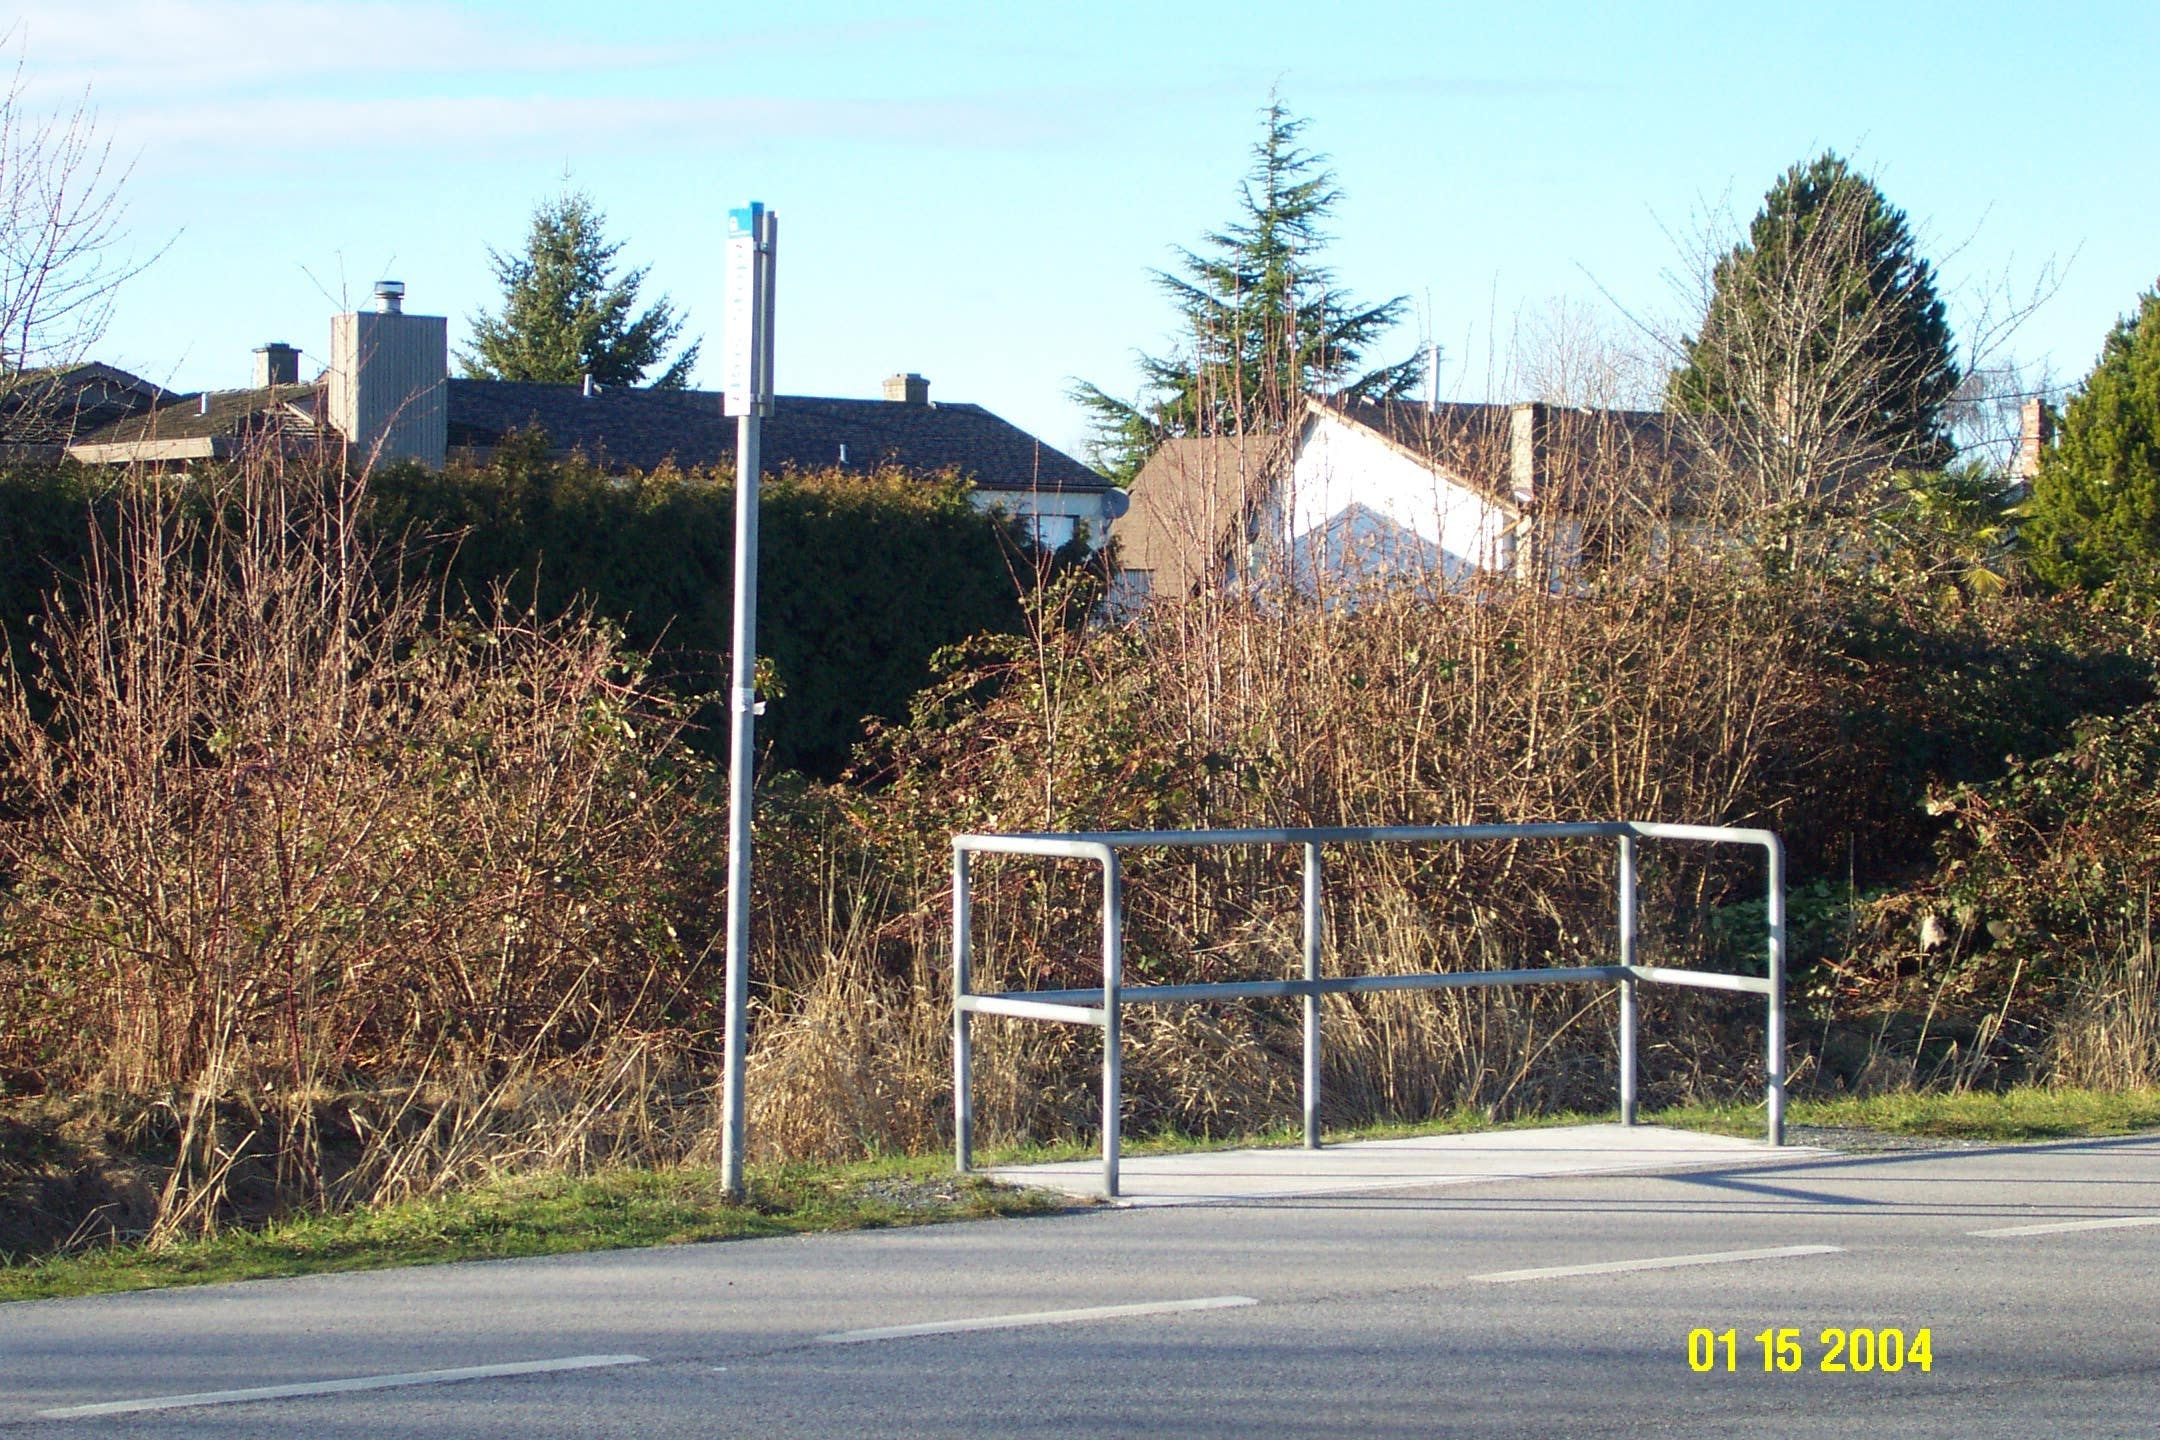 Non-accessible bus stop with no transit shelter